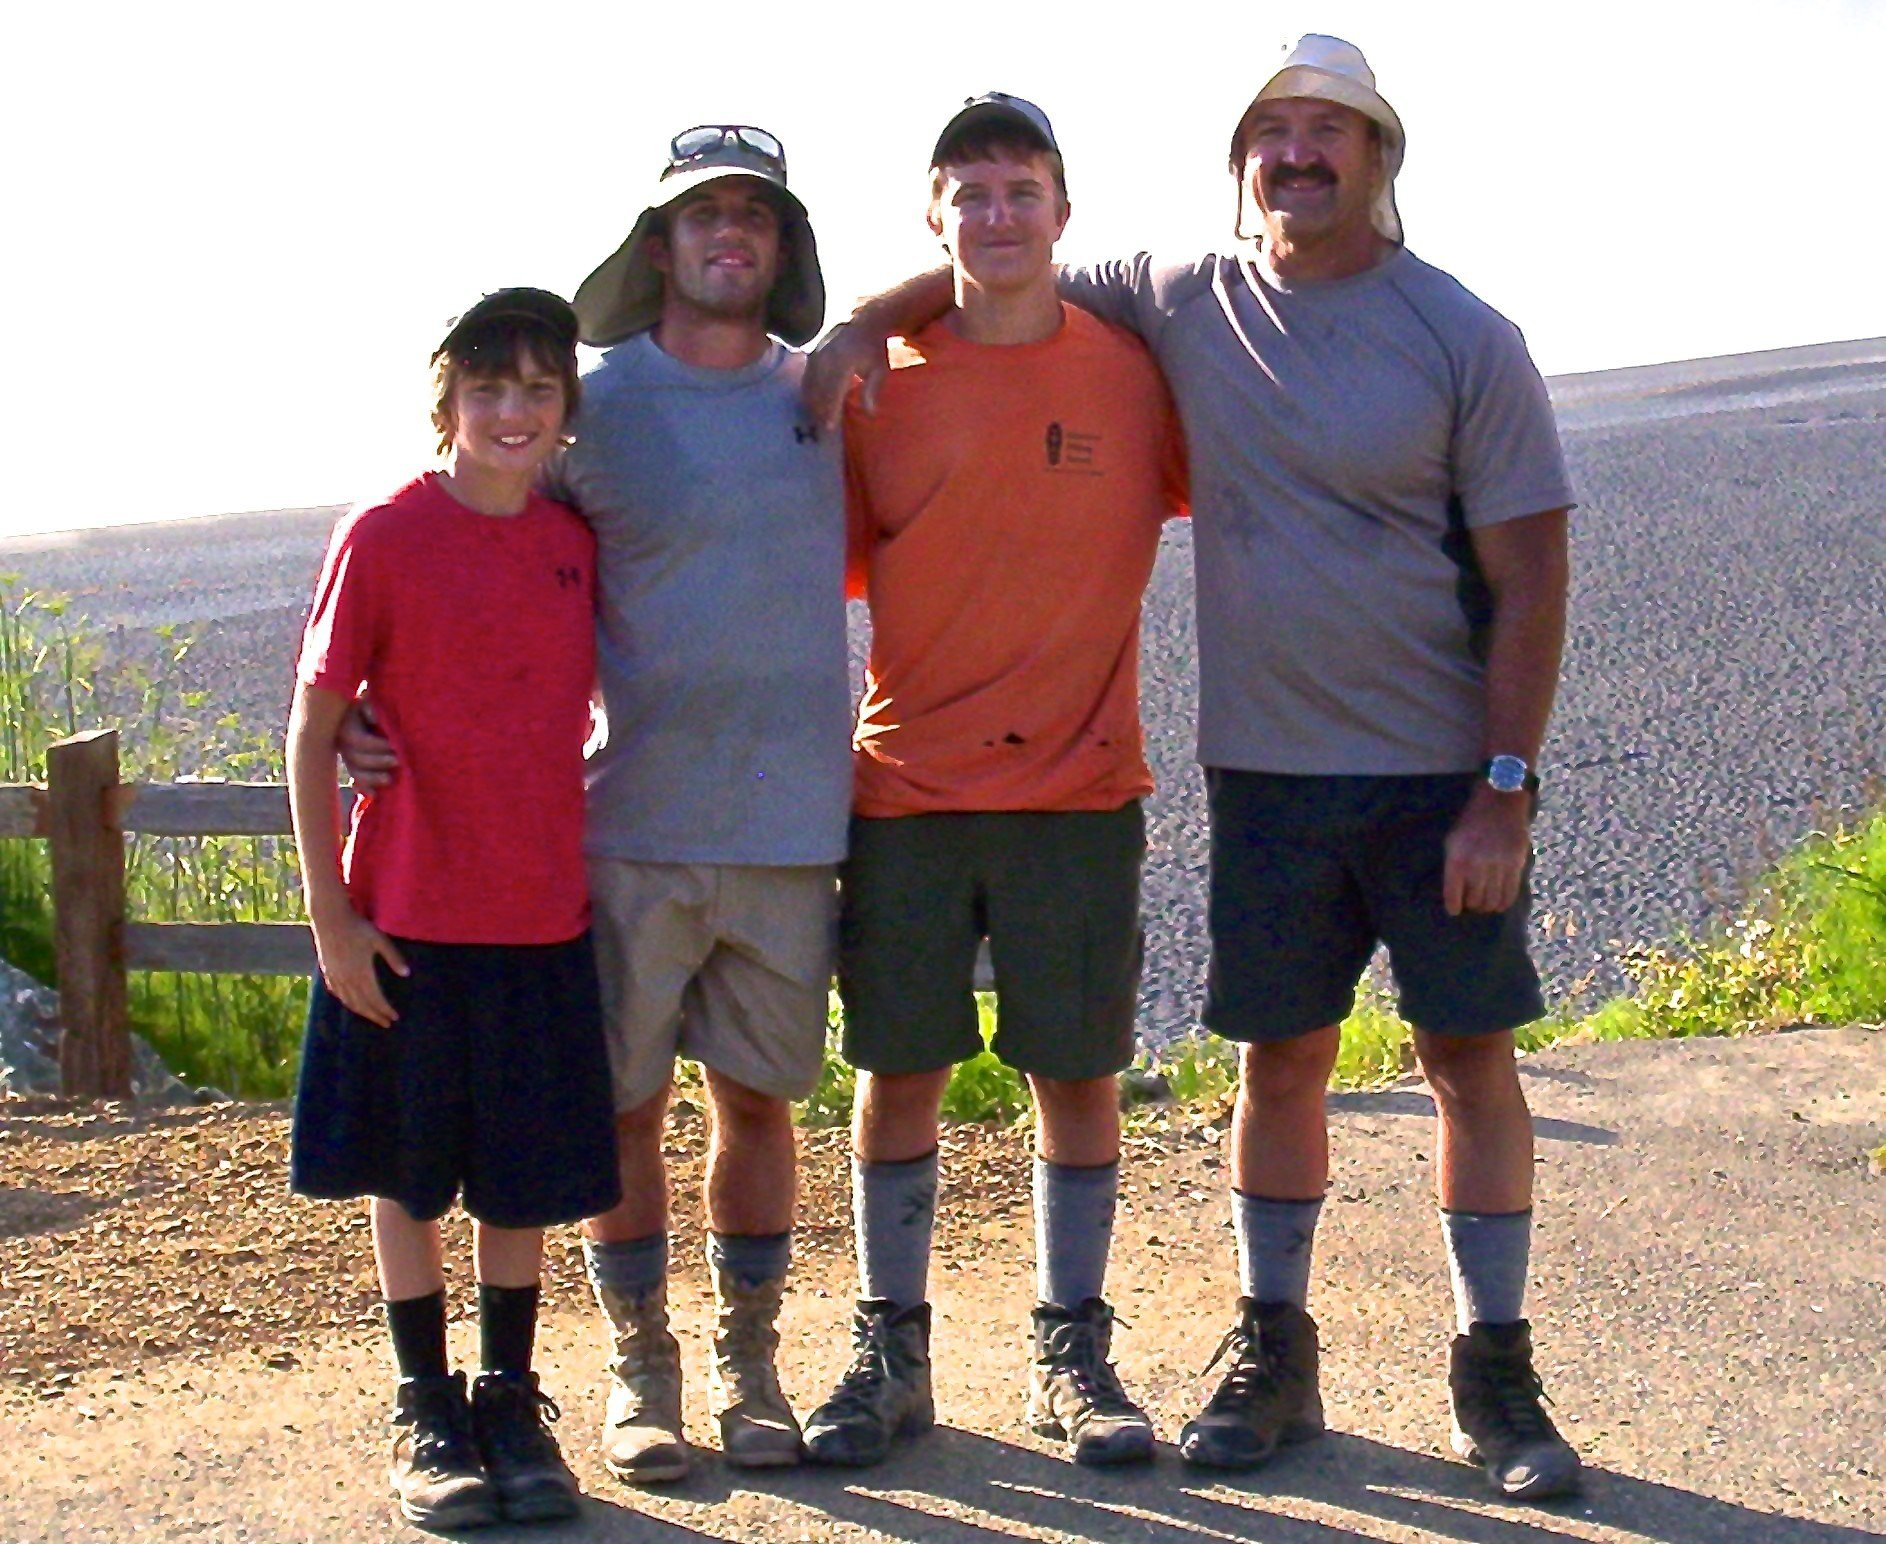 Rodney Page and his three sons